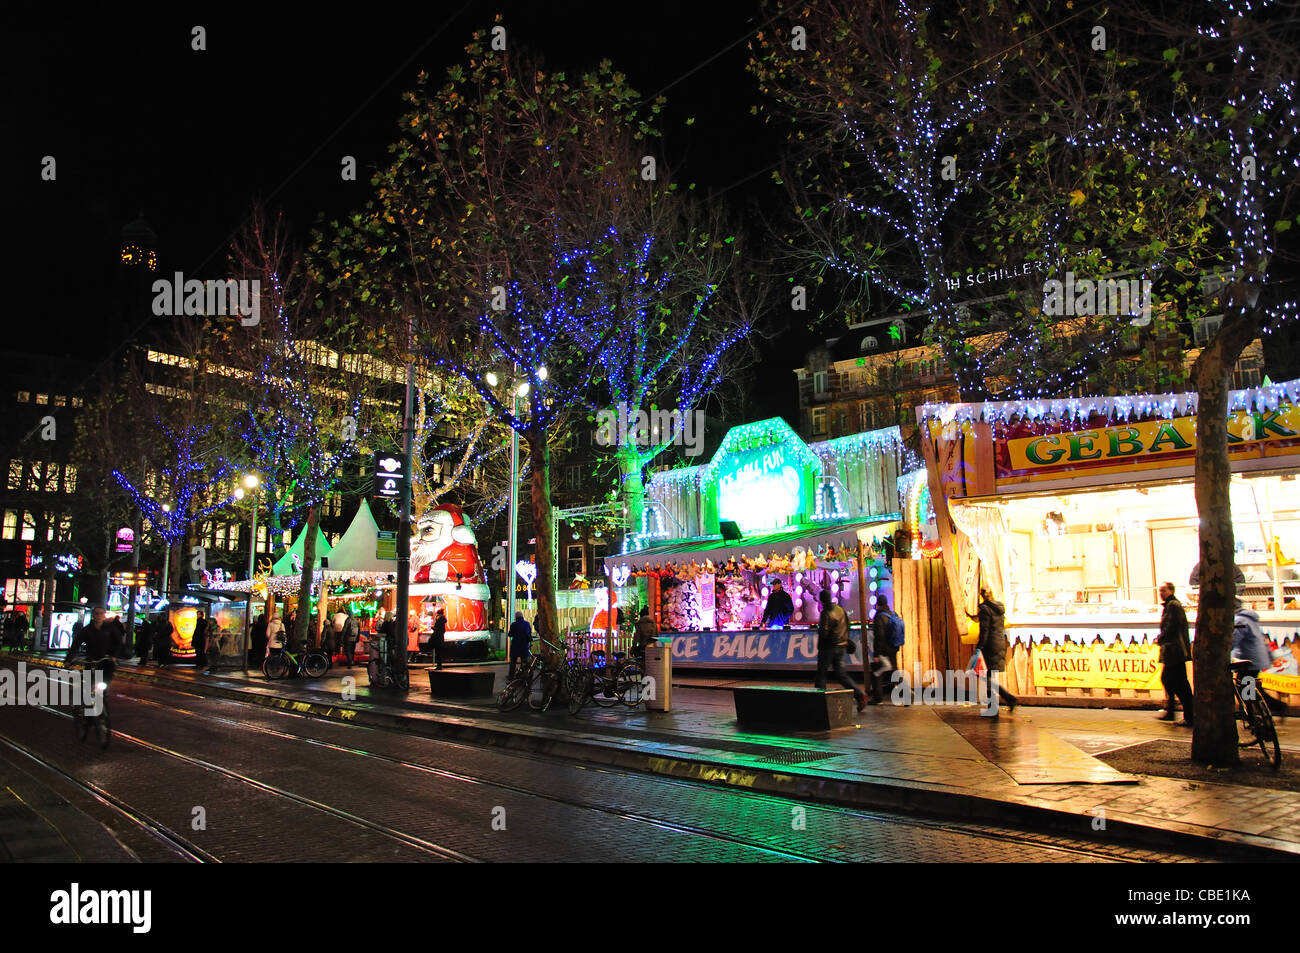 Christmas market at night, Rembrandtplein, Amsterdam, Noord-Holland, Kingdom of the Netherlands - Stock Image